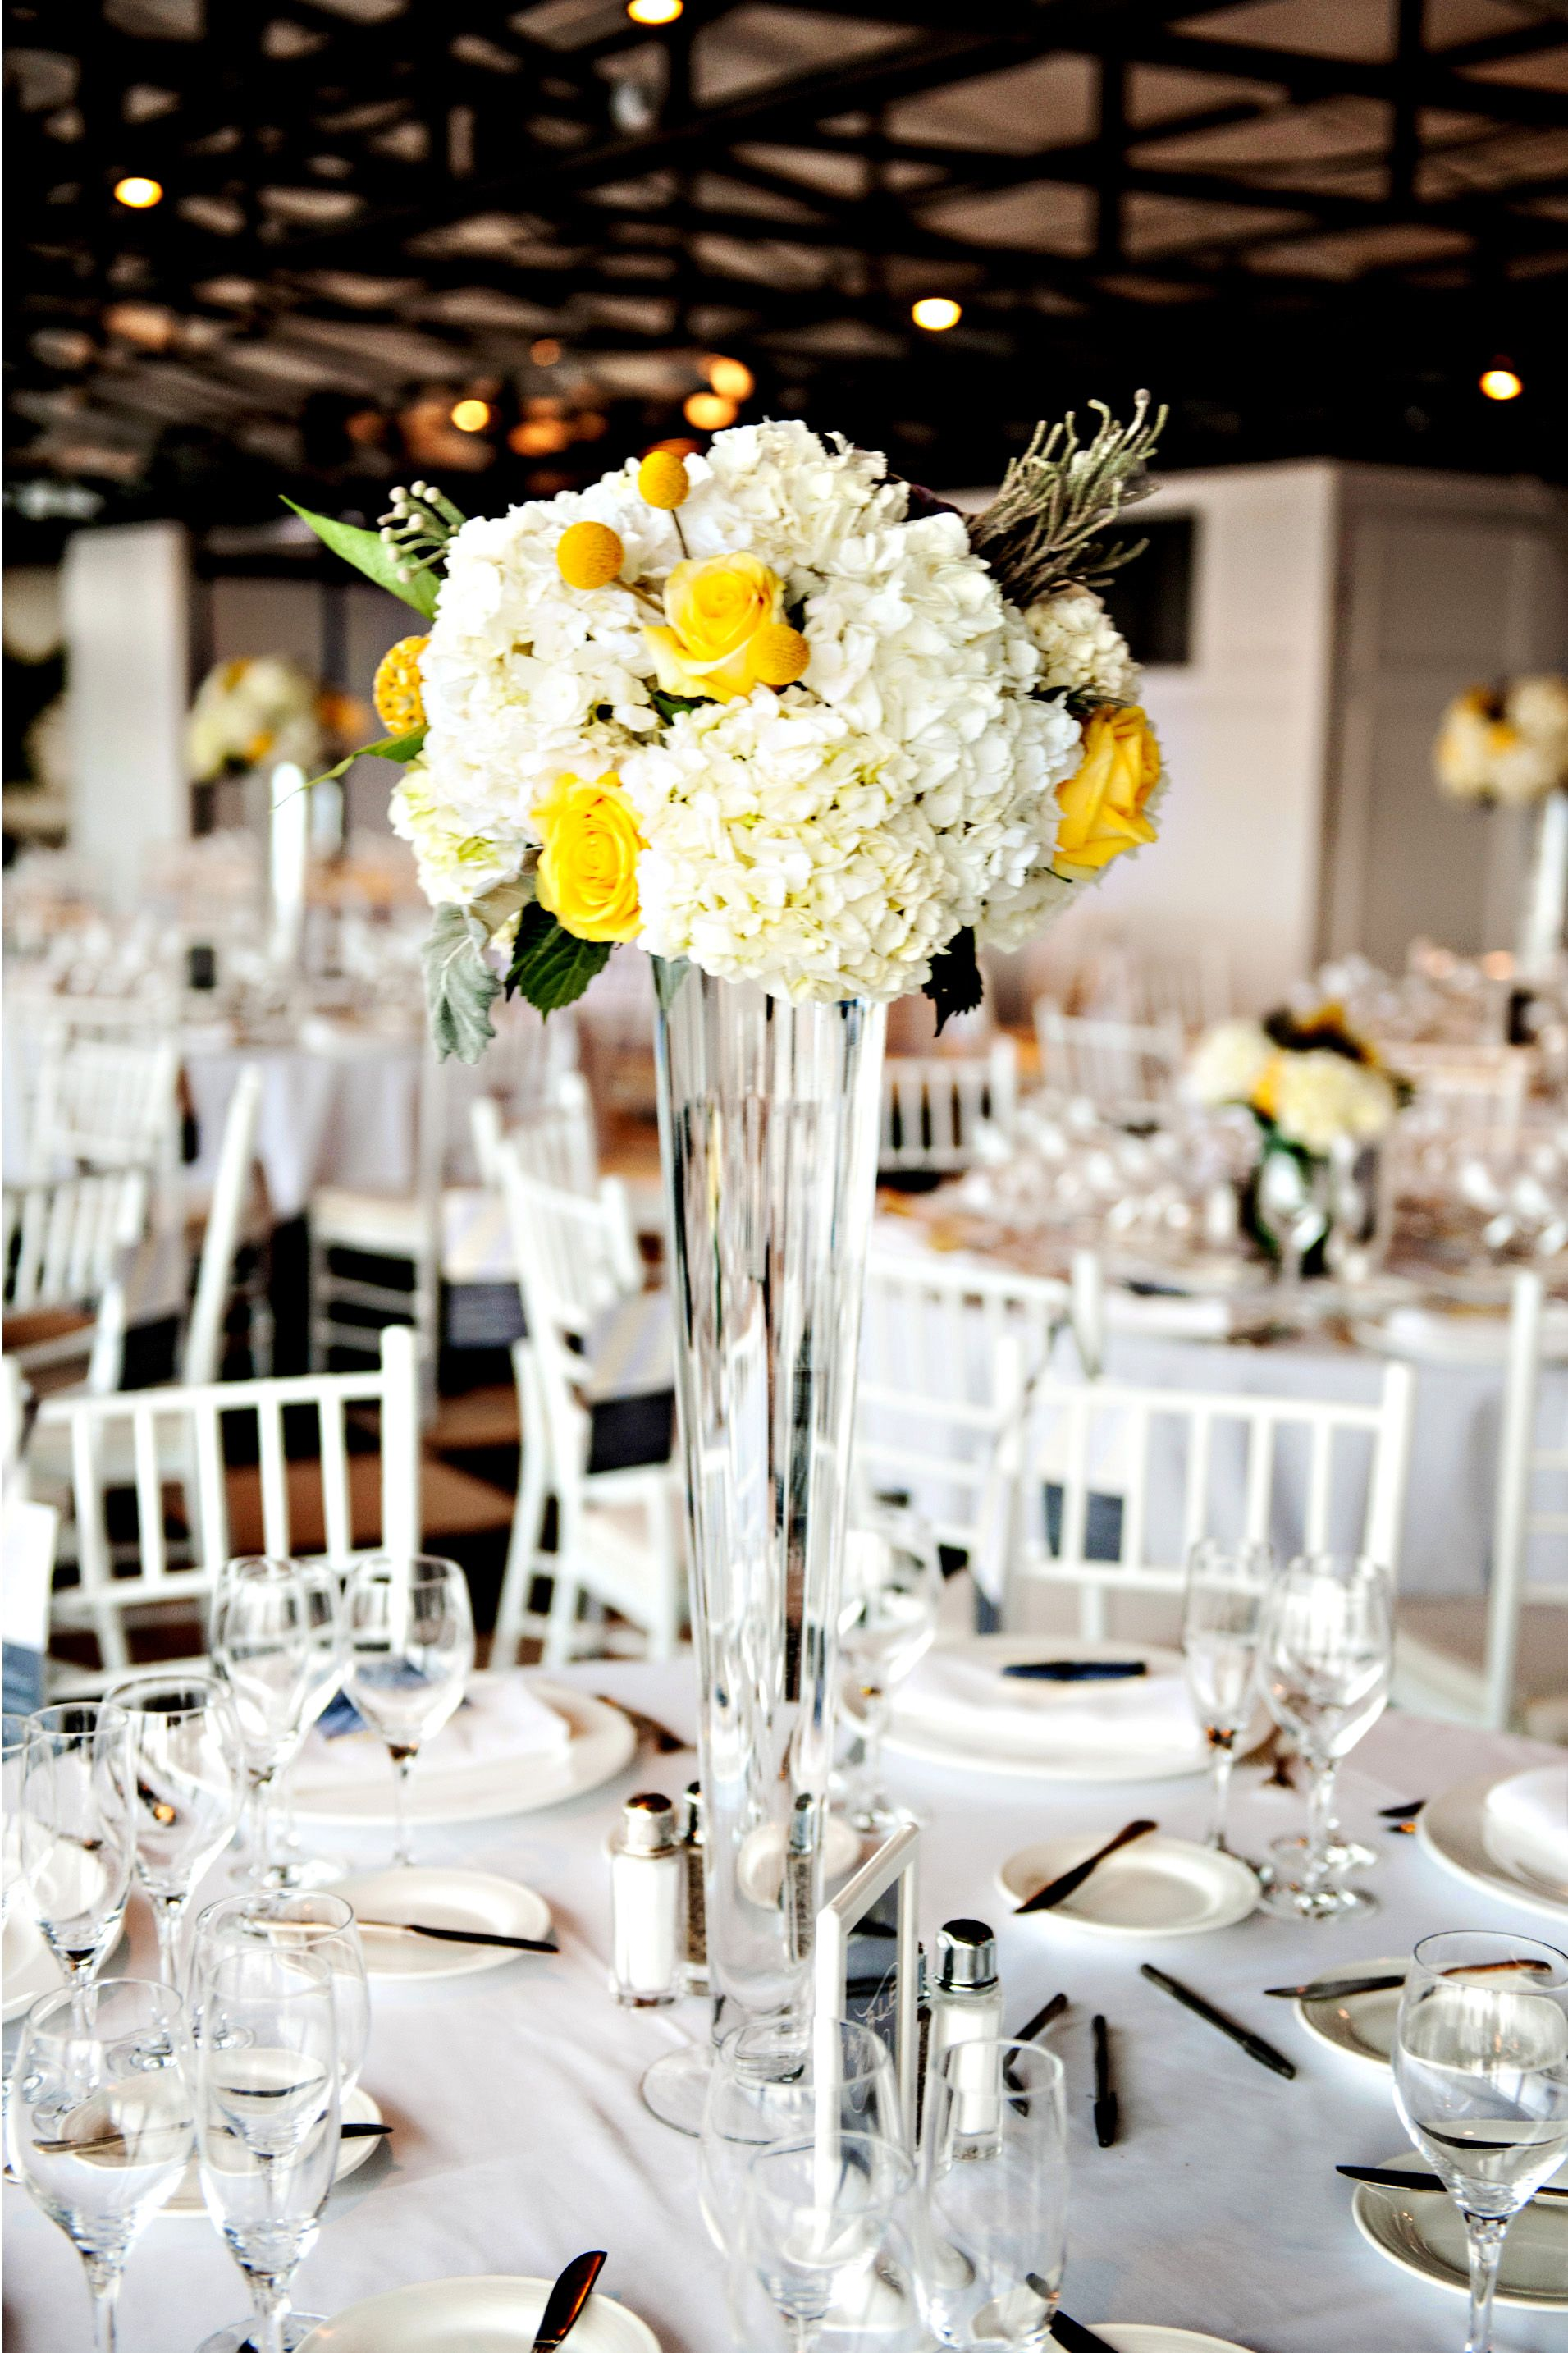 Rose and Hydrangea Centerpiece in Tall Vase | My Wedding | Pinterest ...